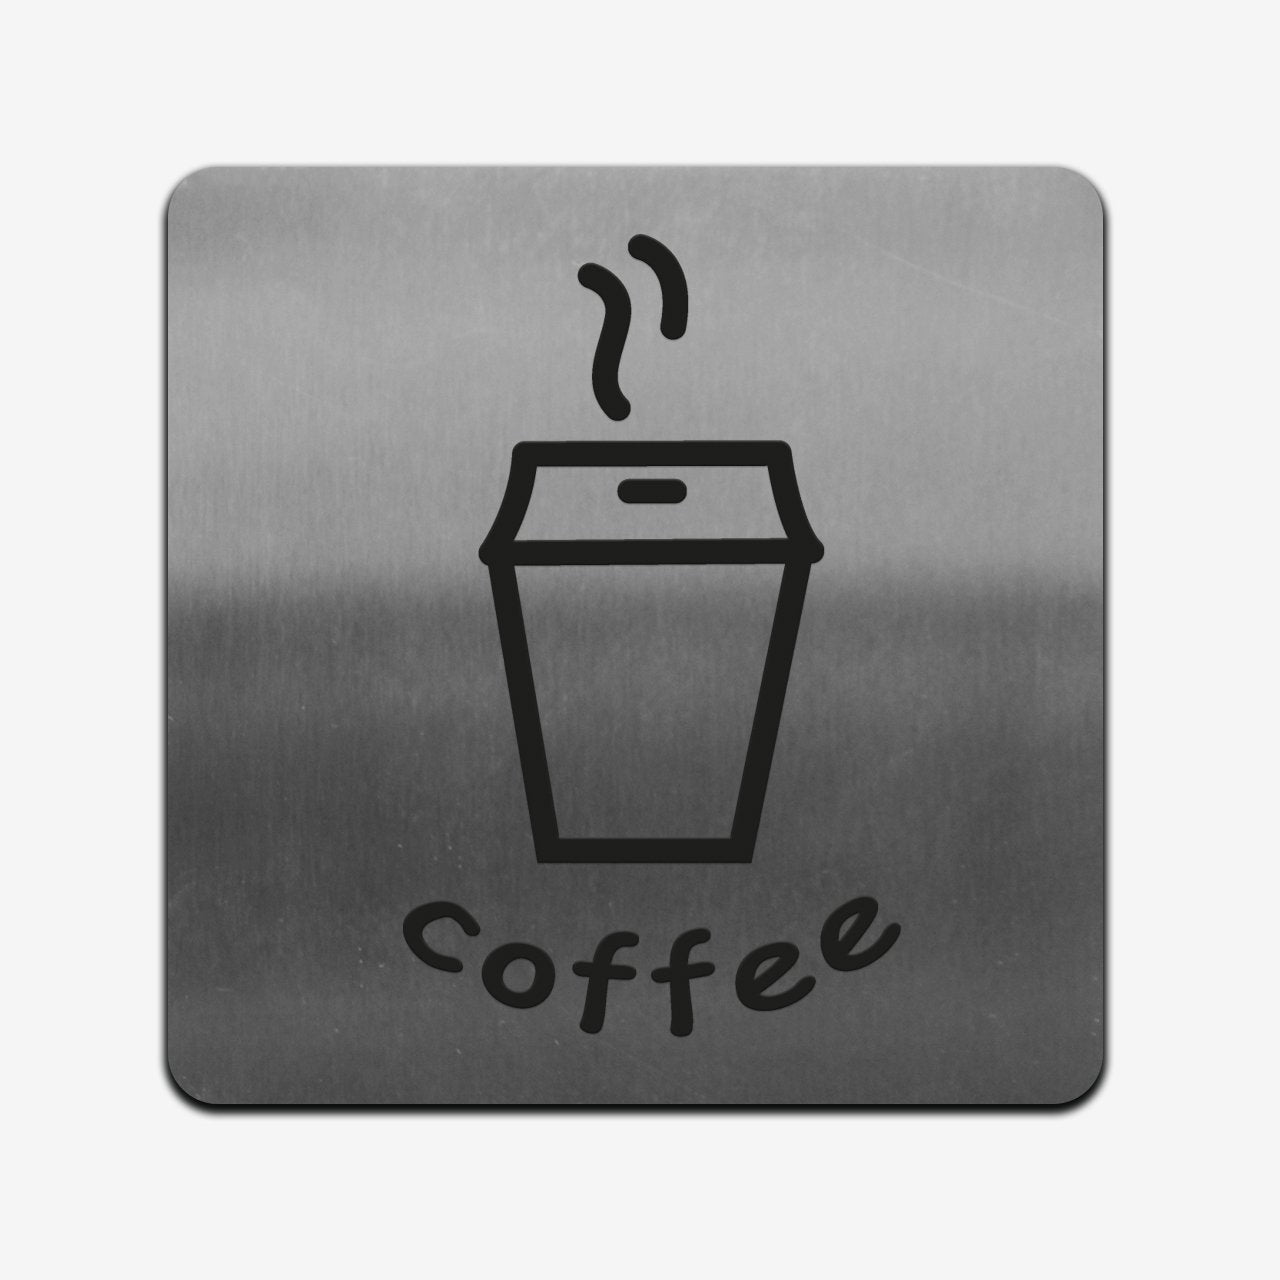 Coffee - Stainless Steel Sign Information signs square Bsign